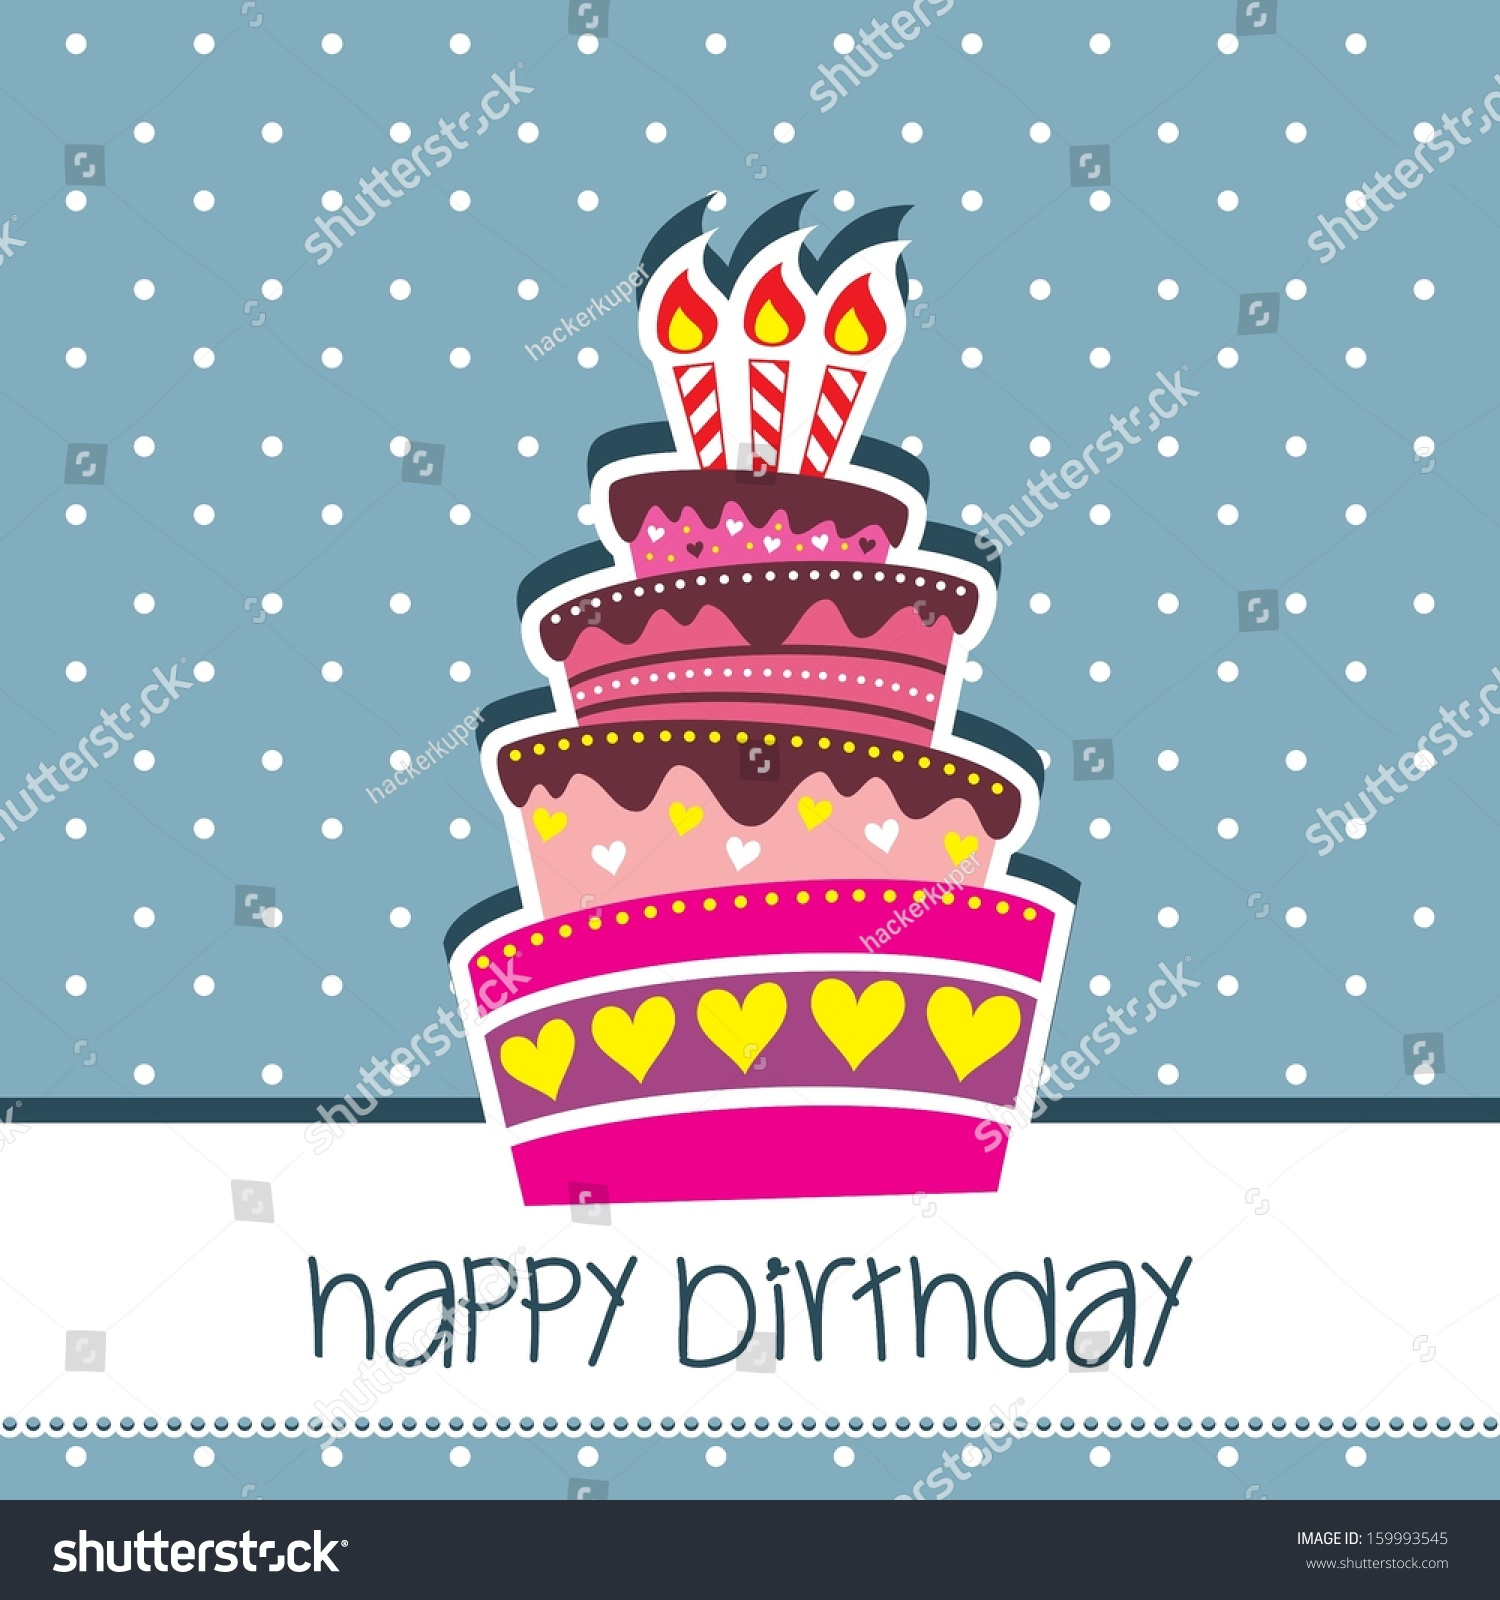 happy birthday cake card vector blue stock vector (royalty free